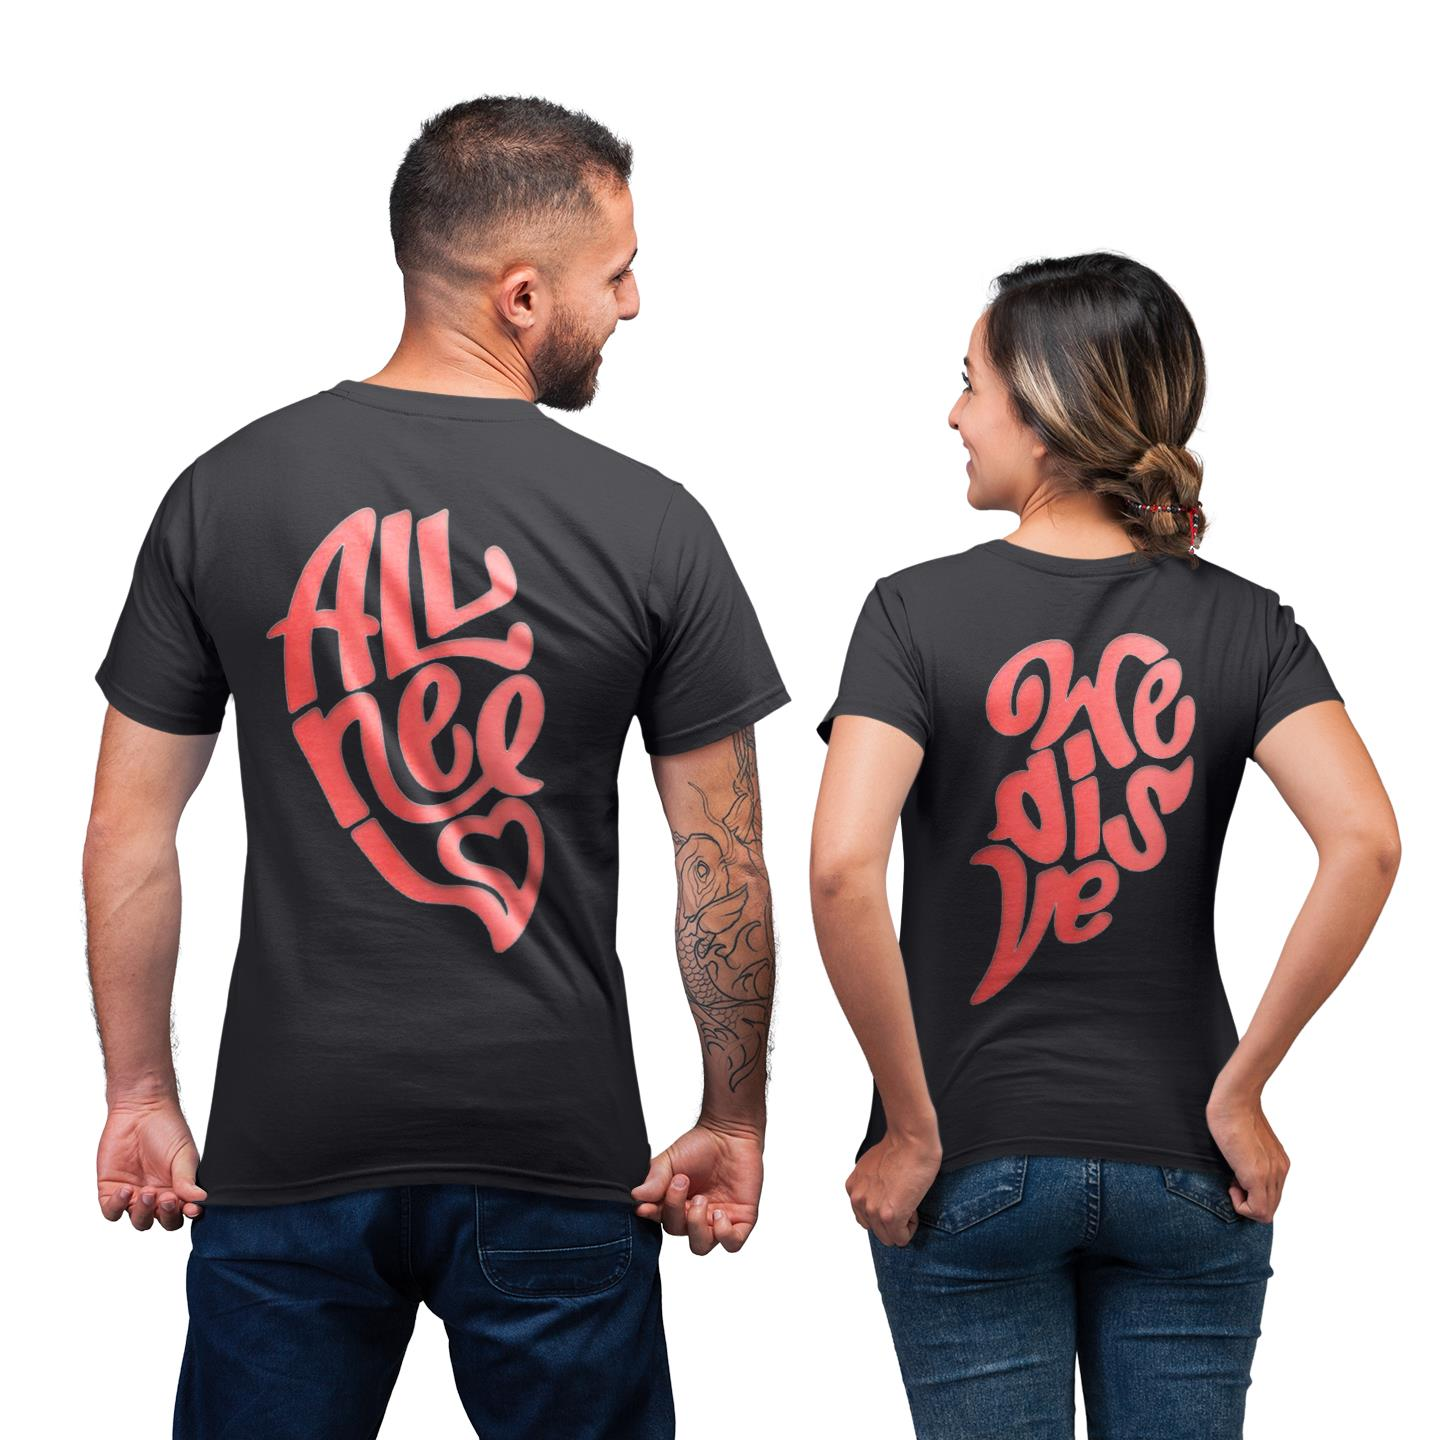 All We Need Is Love Heart Matching Shirt For Lover Couple His Her T-shirt